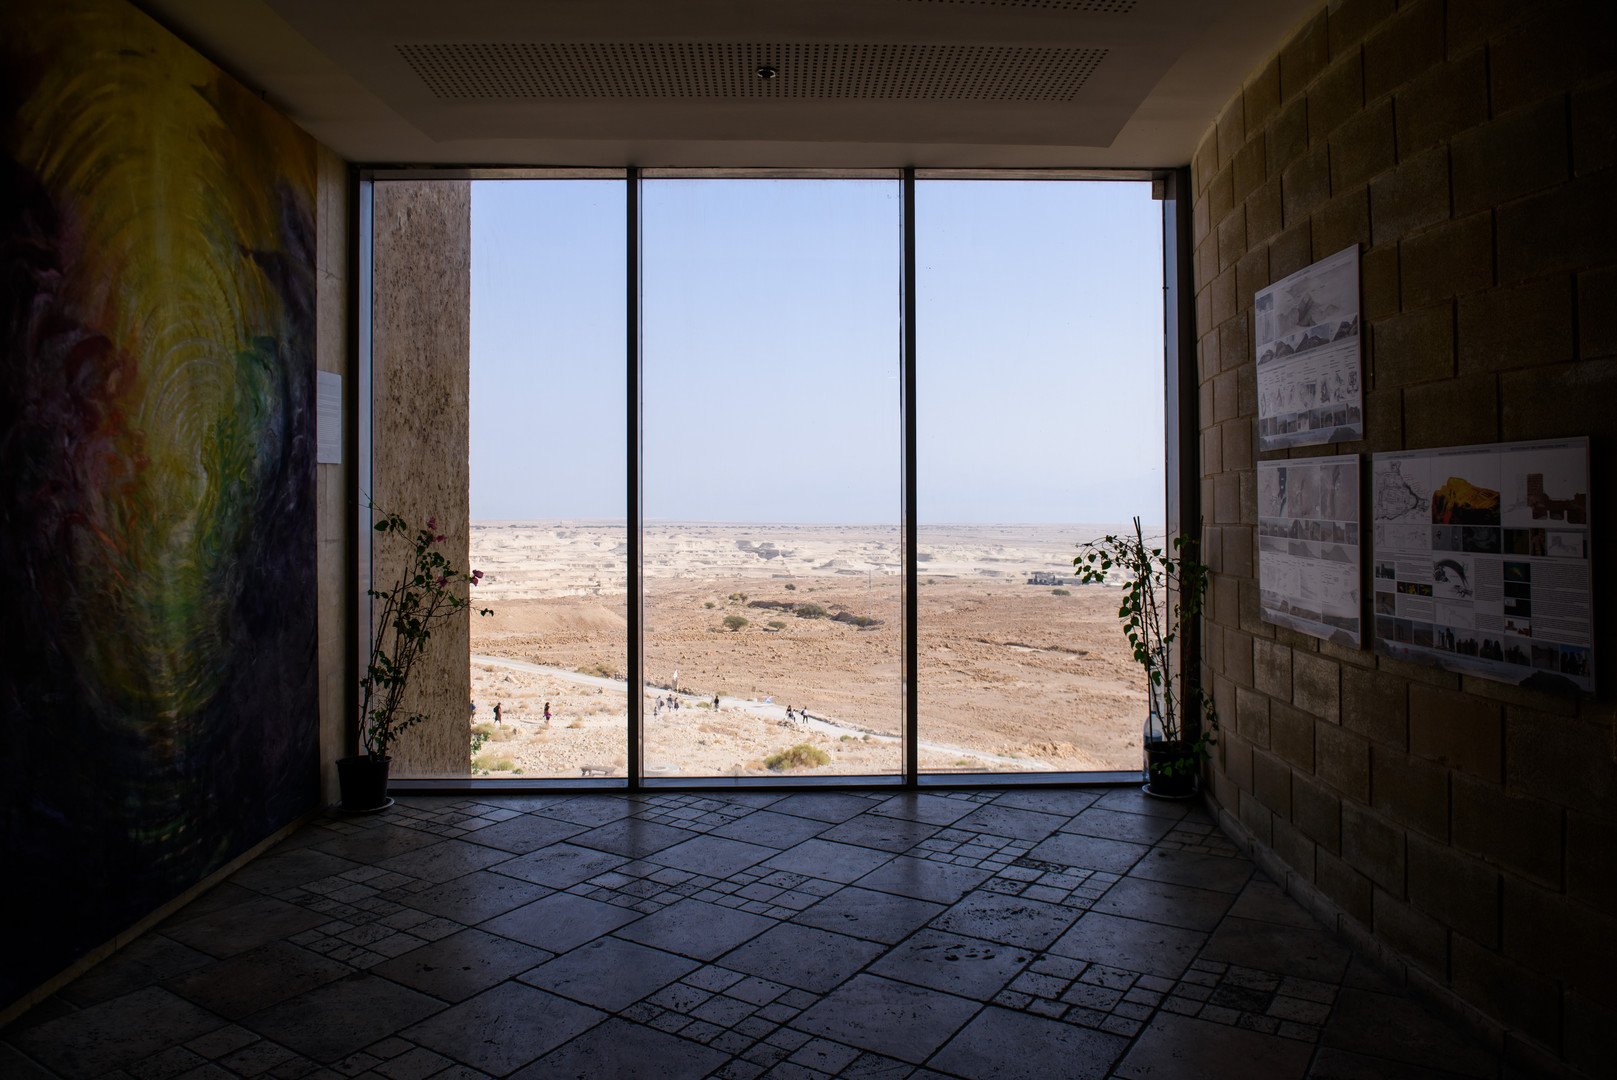 Scene from a Window in Ancient Masada Structure